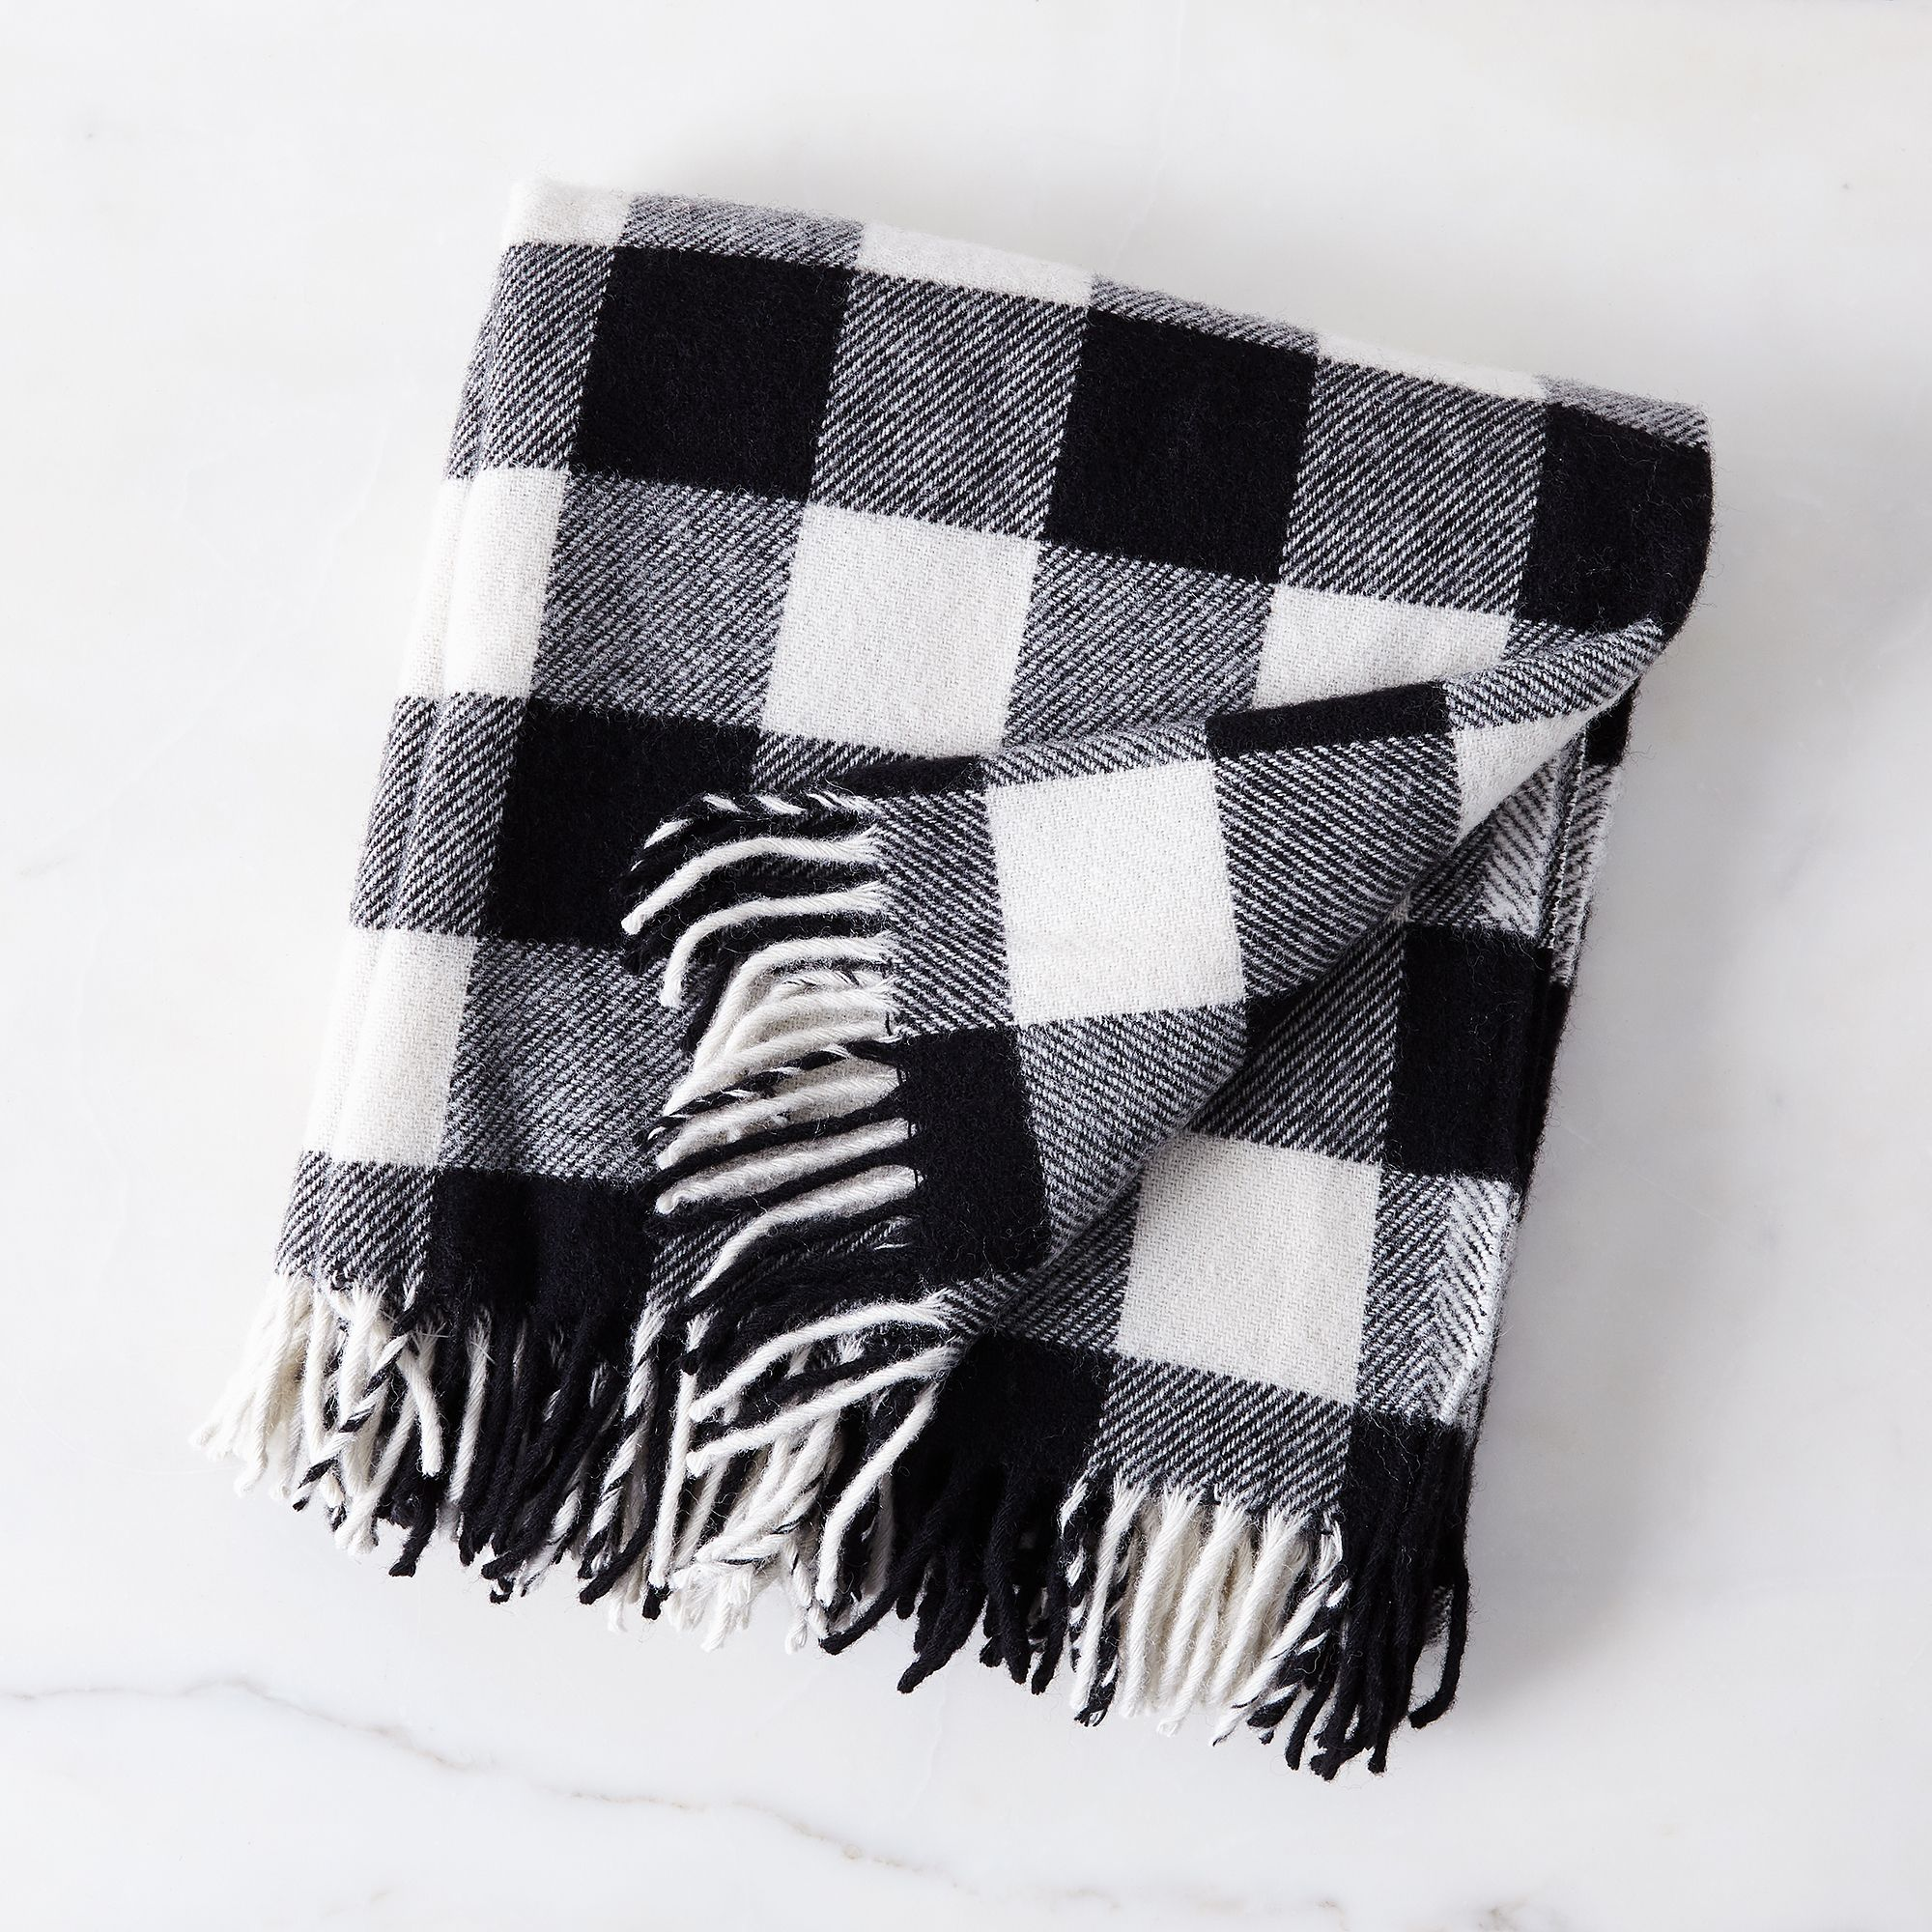 Aea40ee2 3d54 446b afce 0c229bd1ee3a  2016 1025 faribault black and white buffalo check fringed wool throw silo rocky luten 020